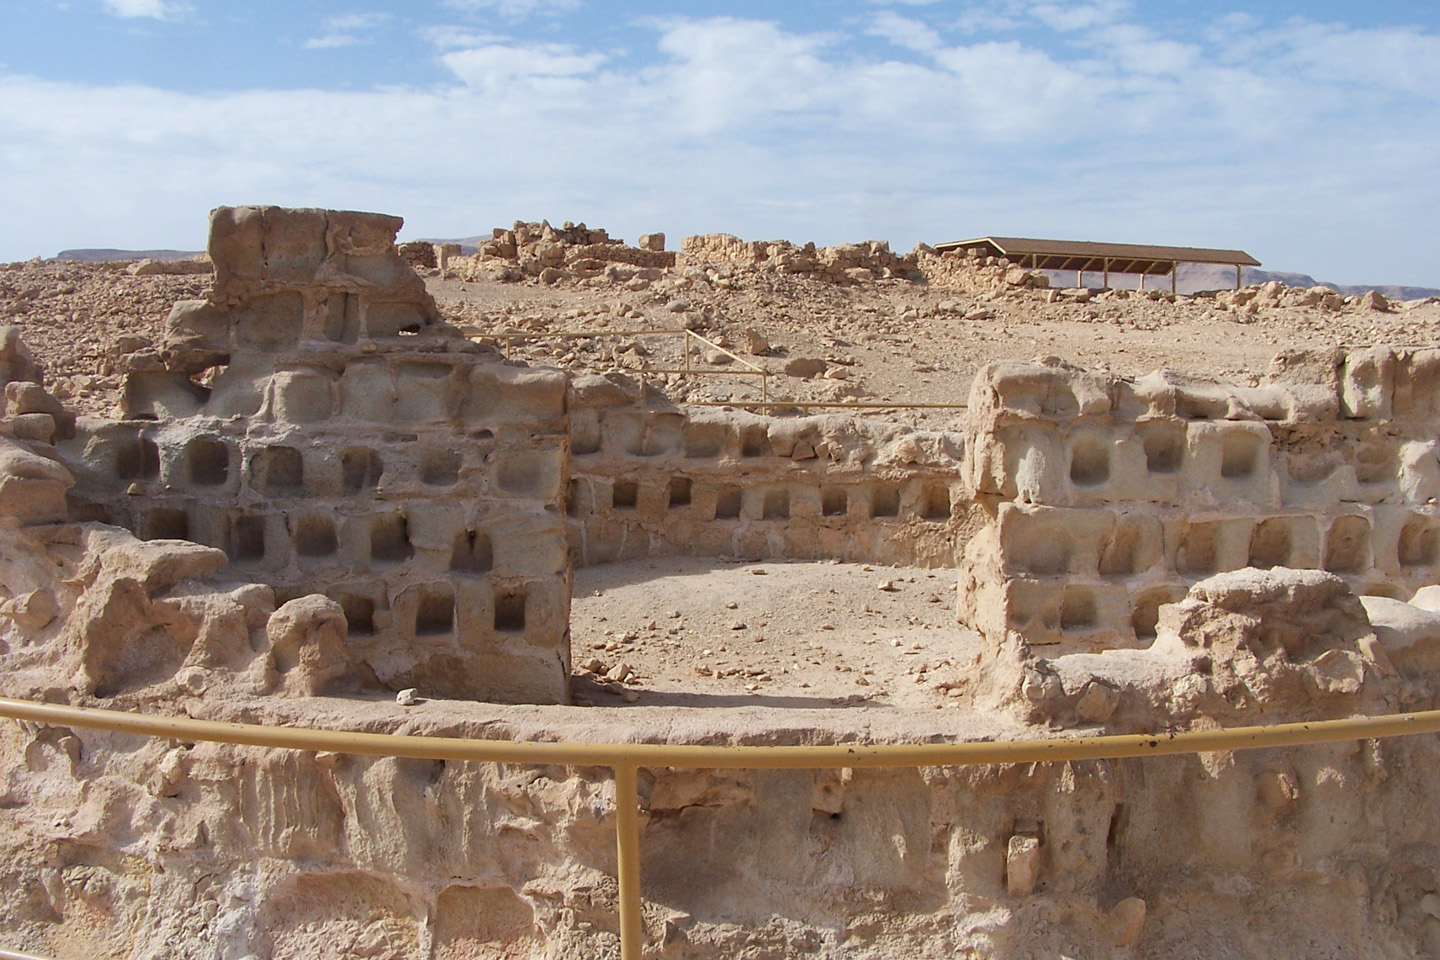 After the Romans destroyed the Second Temple, a group of Jewish rebels fled Jerusalem and settled themselves in Masada. Lucius Flavius Silva, who was then the Governor of Judaea, sieged the cliff for two or three months and eventually the Roman Tenth Legion was able to break through the walls and gates of the fortress and palaces of Masada in the year 73.